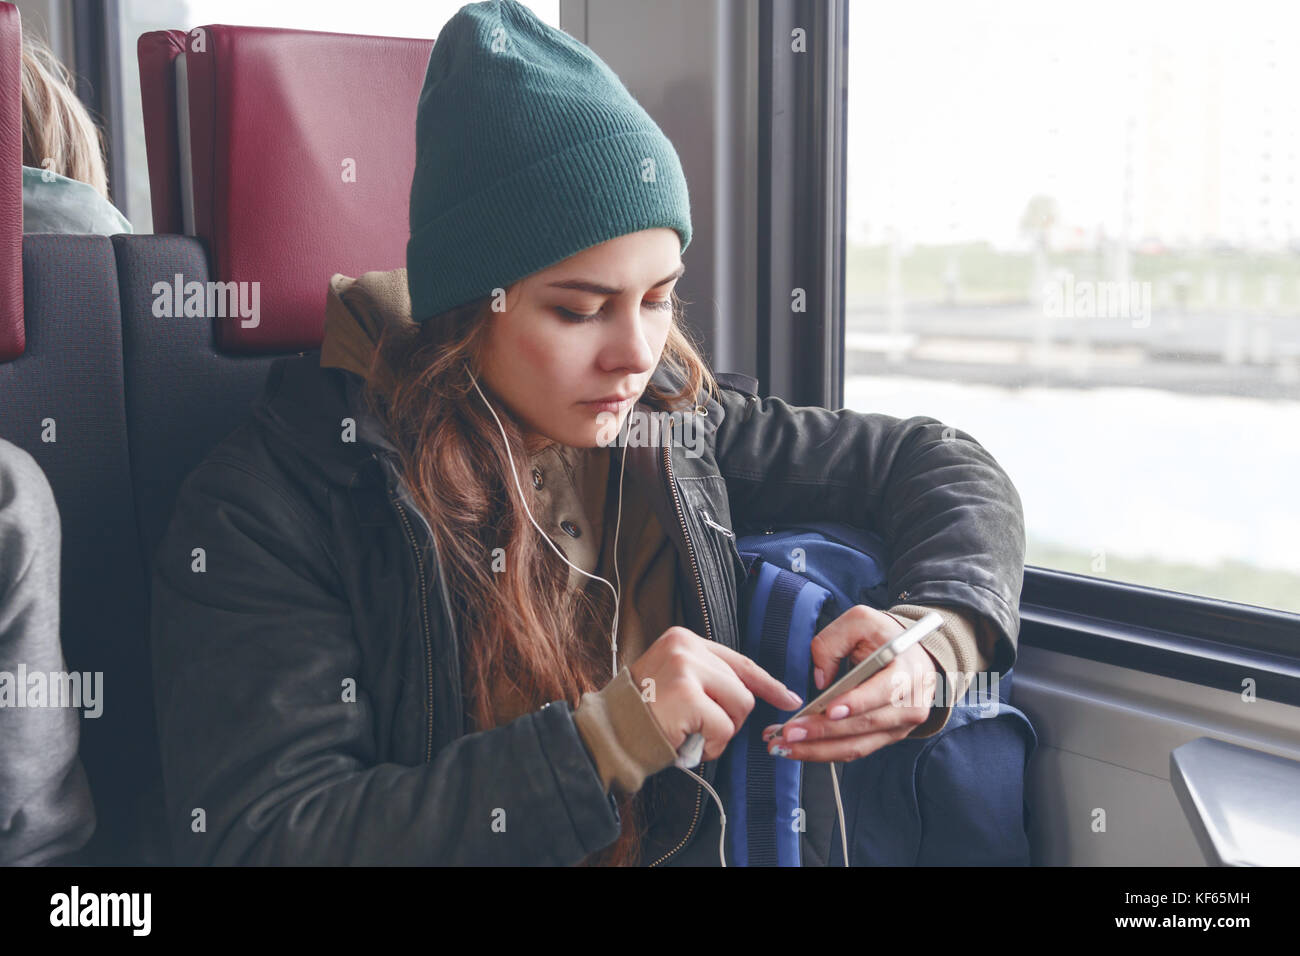 Modern people city lifestyle. Young urban woman using phone app and wireless headphones to listen to music or play Stock Photo